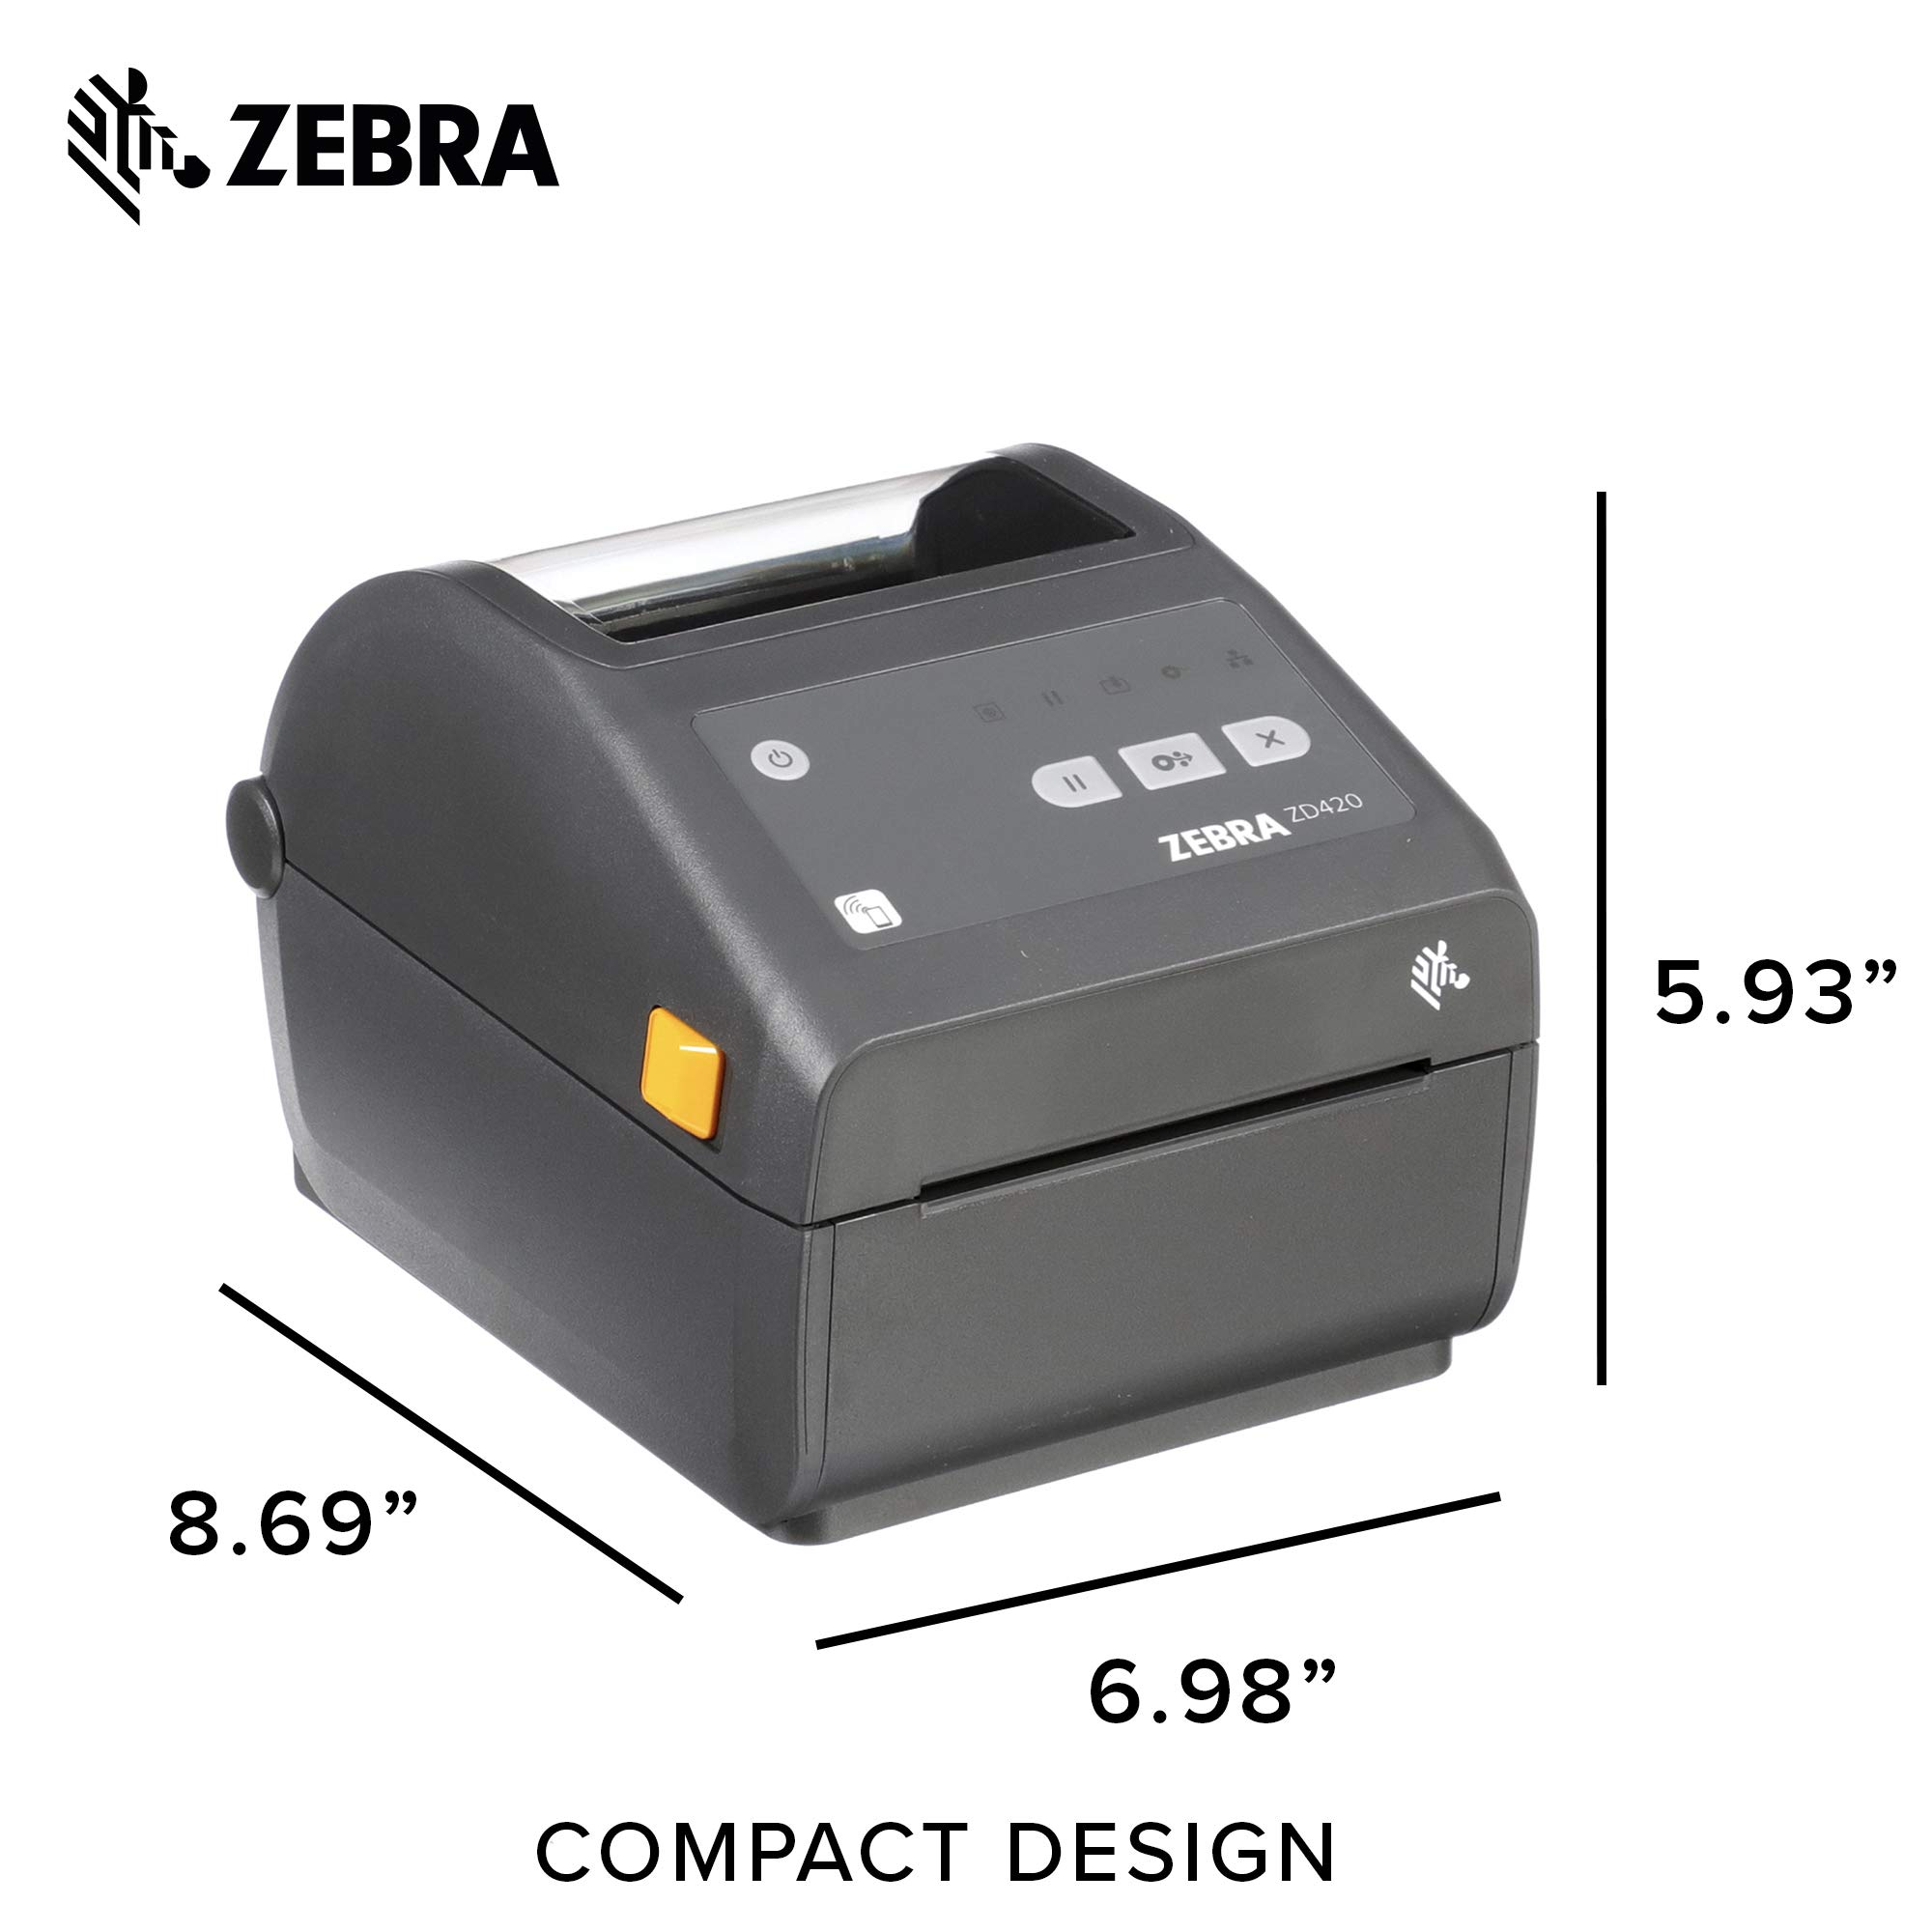 Zebra - ZD420d Direct Thermal Desktop Printer for Labels and Barcodes - Print Width 4 in - 300 dpi - Interface: WiFi, Bluetooth, USB - ZD42043-D01W01EZ by Zebra Technologies (Image #6)